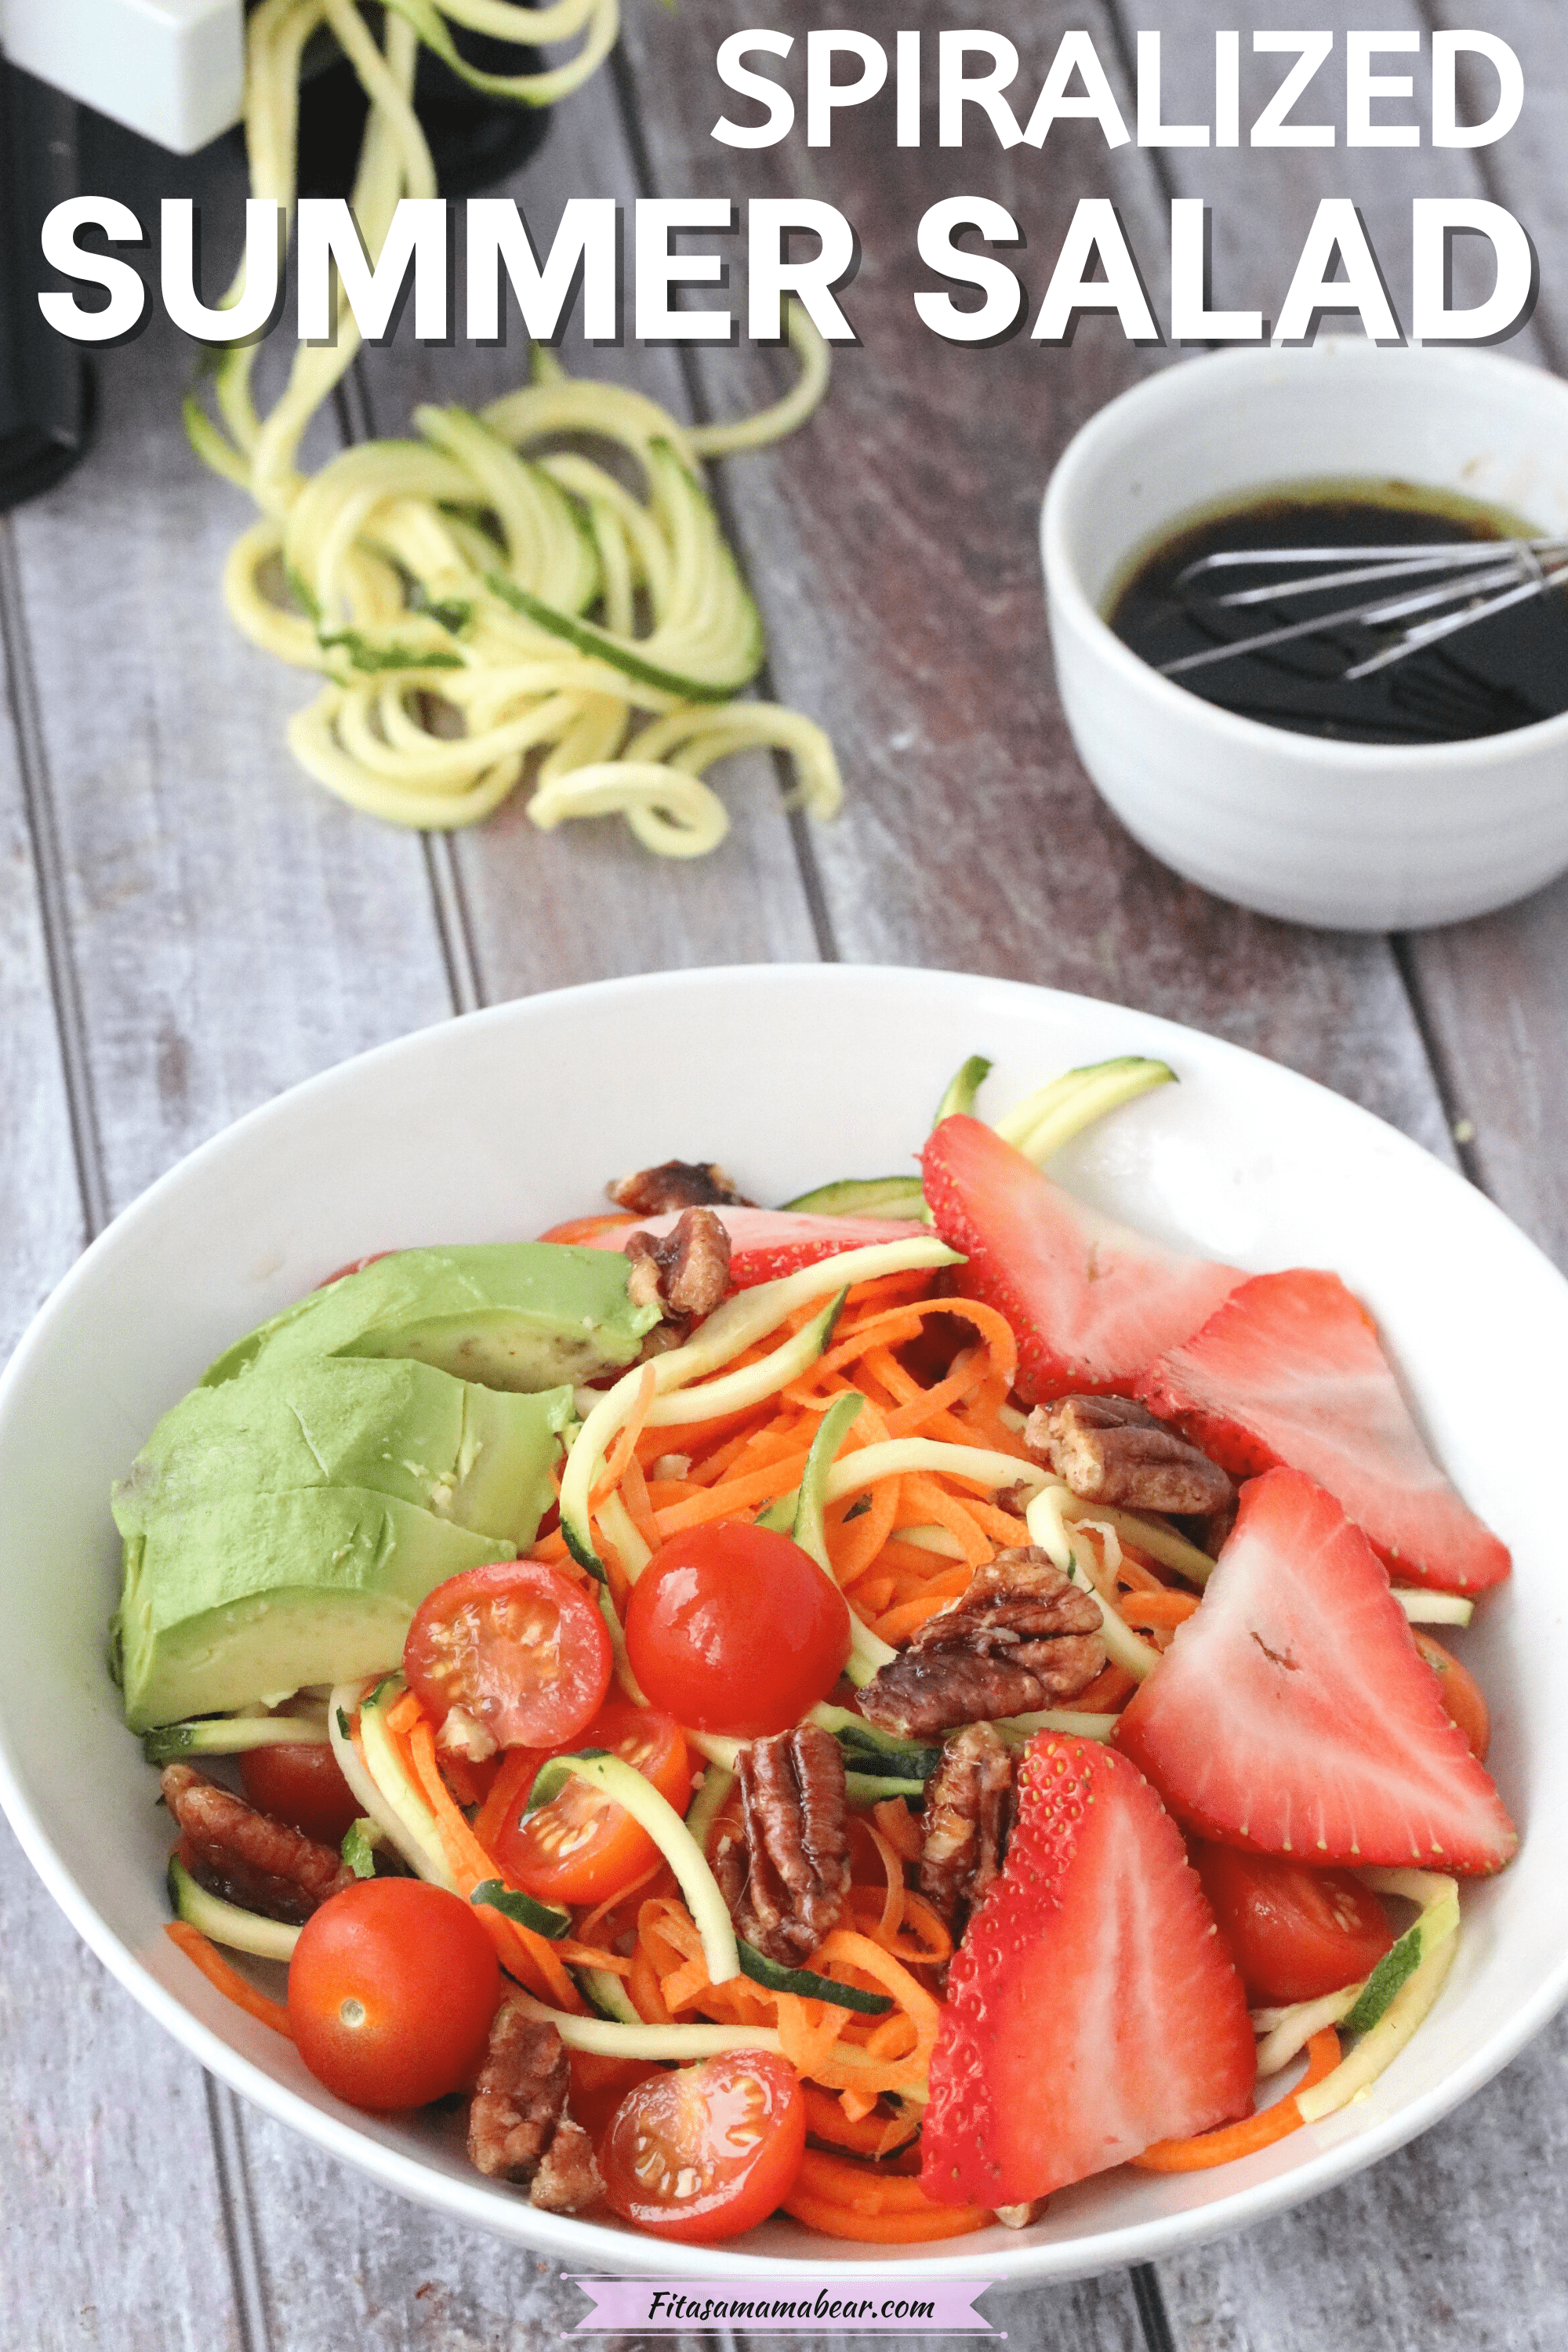 Pinterest image with text: Spiralized zucchini salad topped with strawberries, avocado and pecans with dressing and zucchini noodles behind it